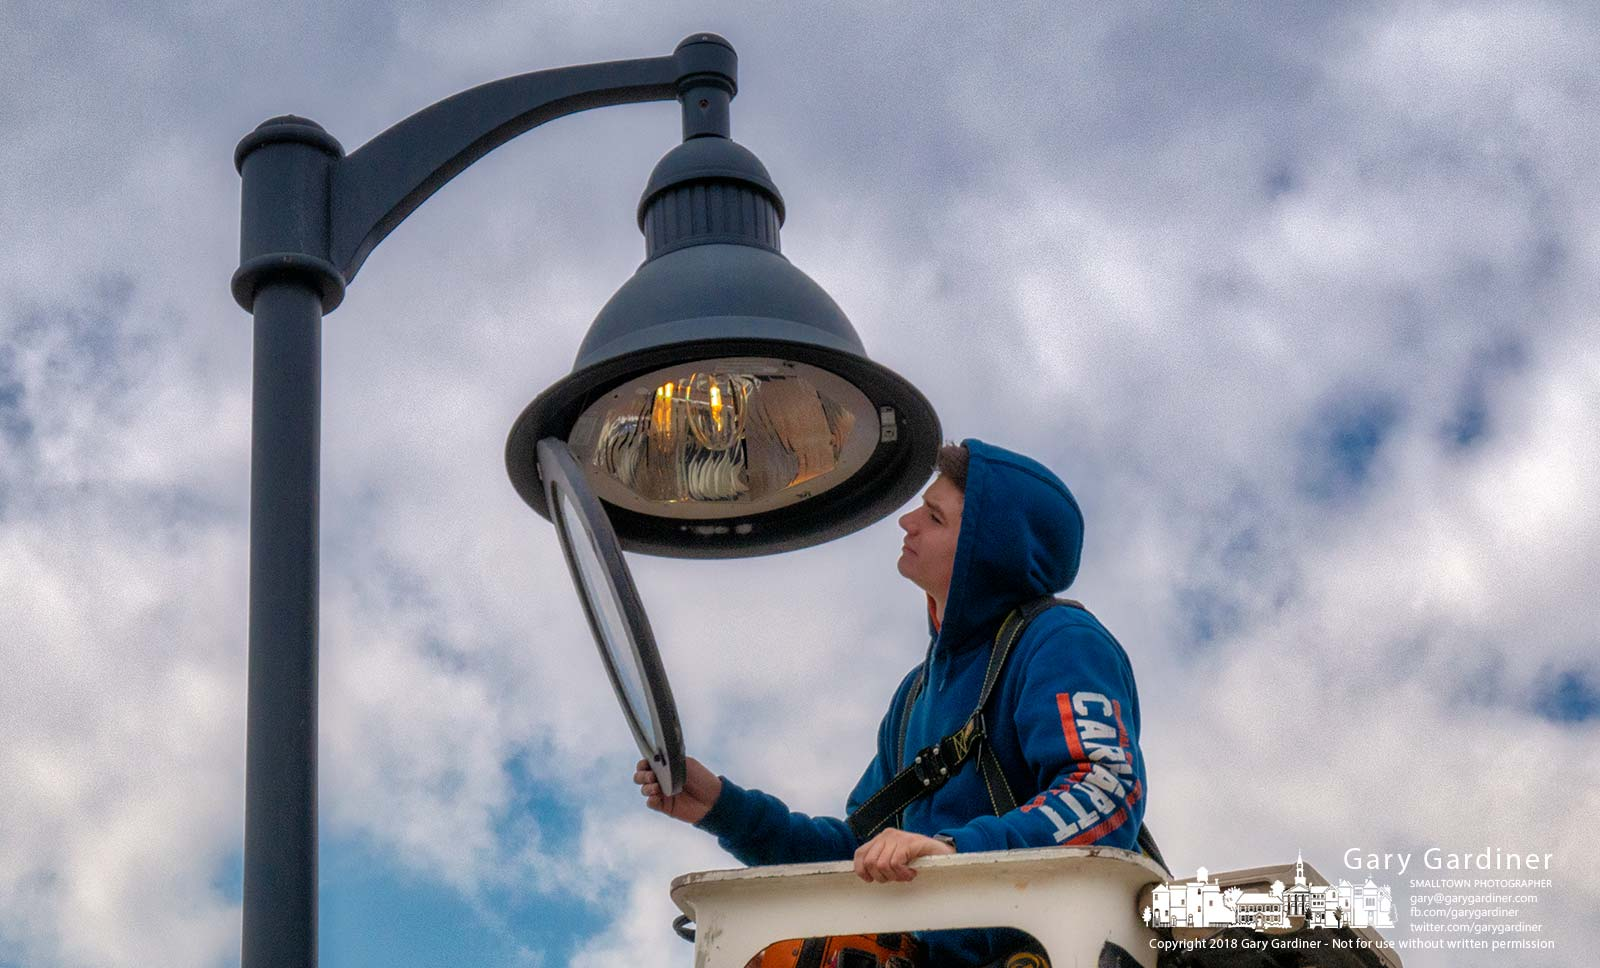 An electrician inspects repairs on a light over the picnic tables at Westerville Square. My Final Photo for April 10, 2018.